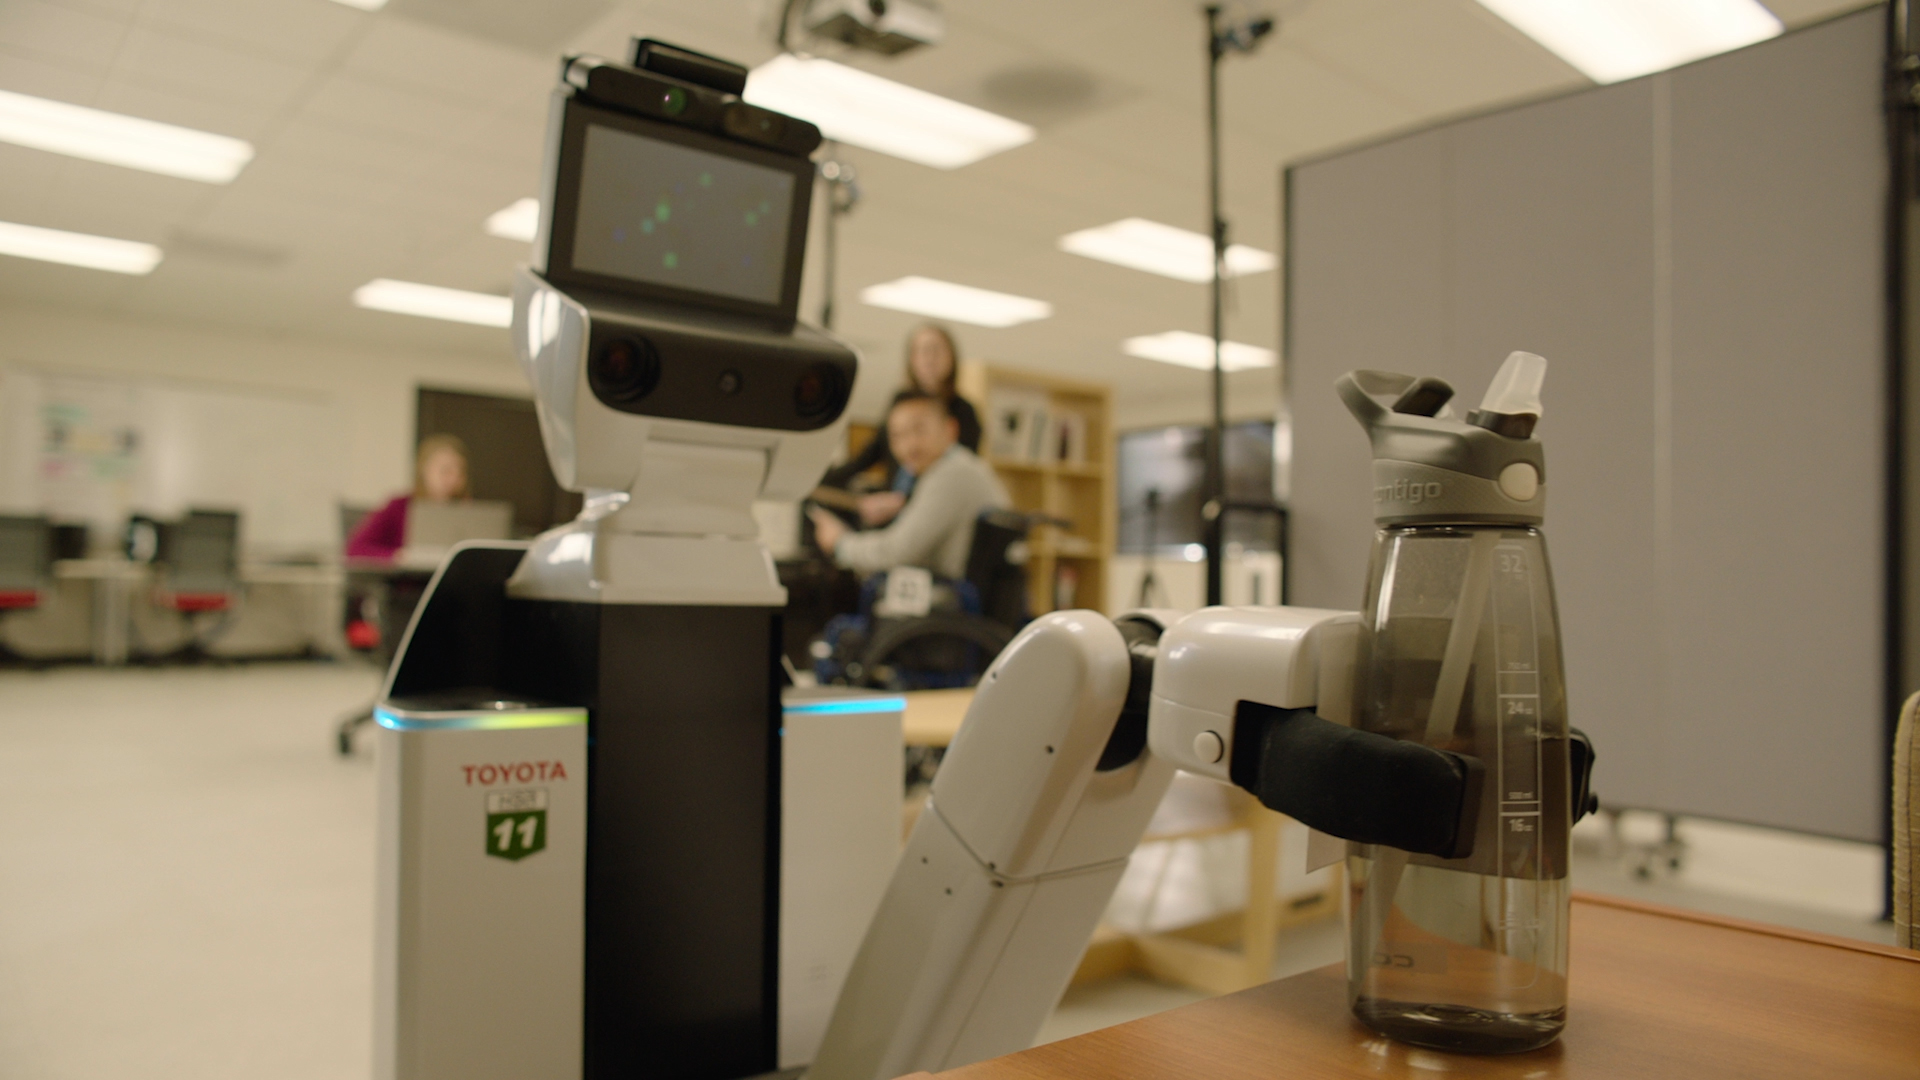 Toyota's Human Support Robot (HSR) picks up a bottle of water. The HSR is designed to assist people with limited mobility, including helping with everyday tasks, such as opening doors and delivering water bottles or snacks from the pantry.